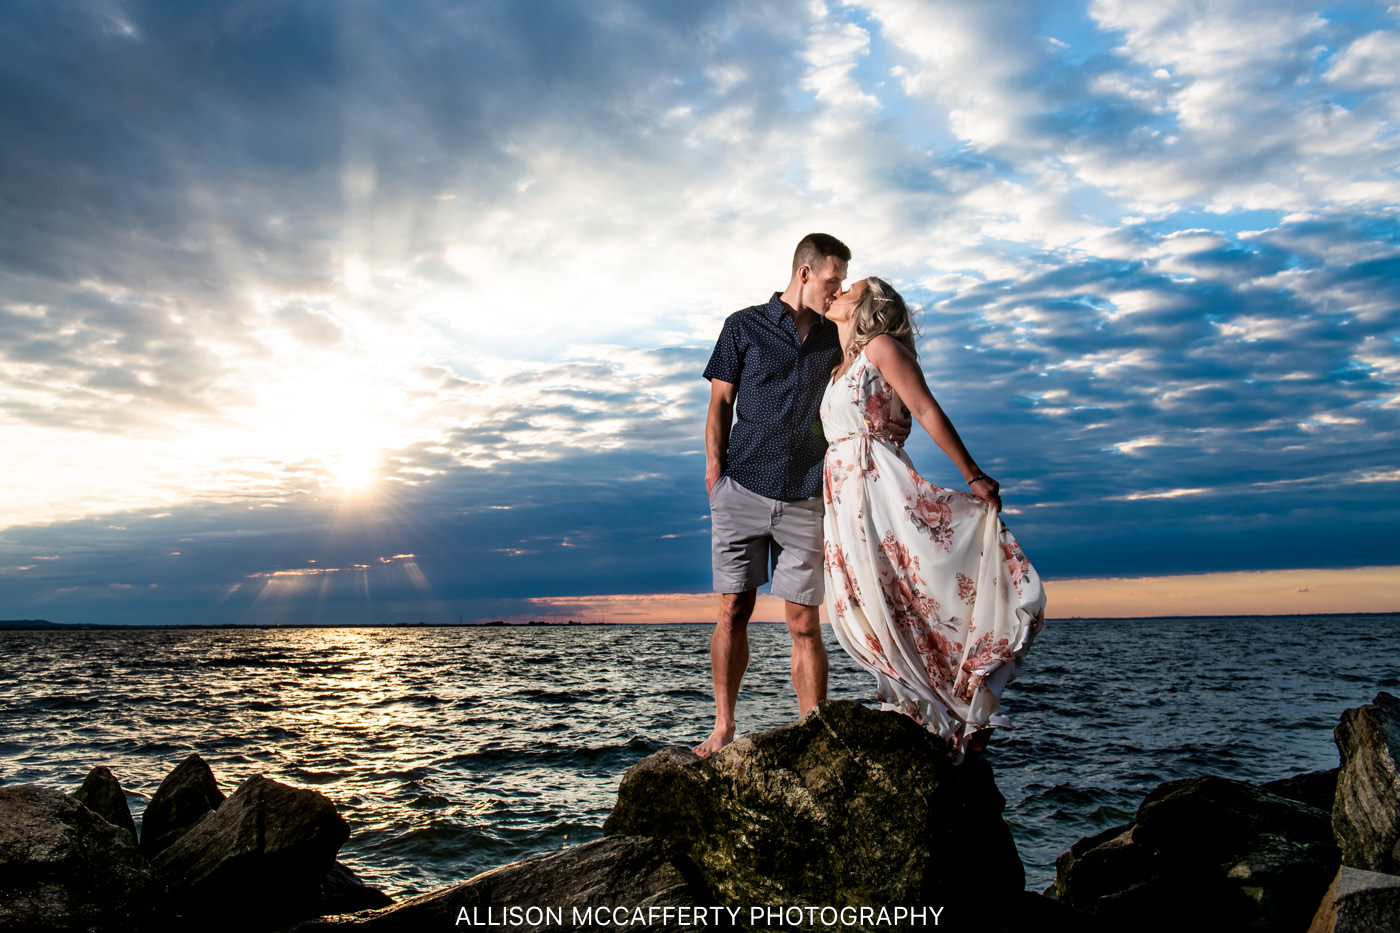 Kierstin & Frank | Sandy Hook Engagement